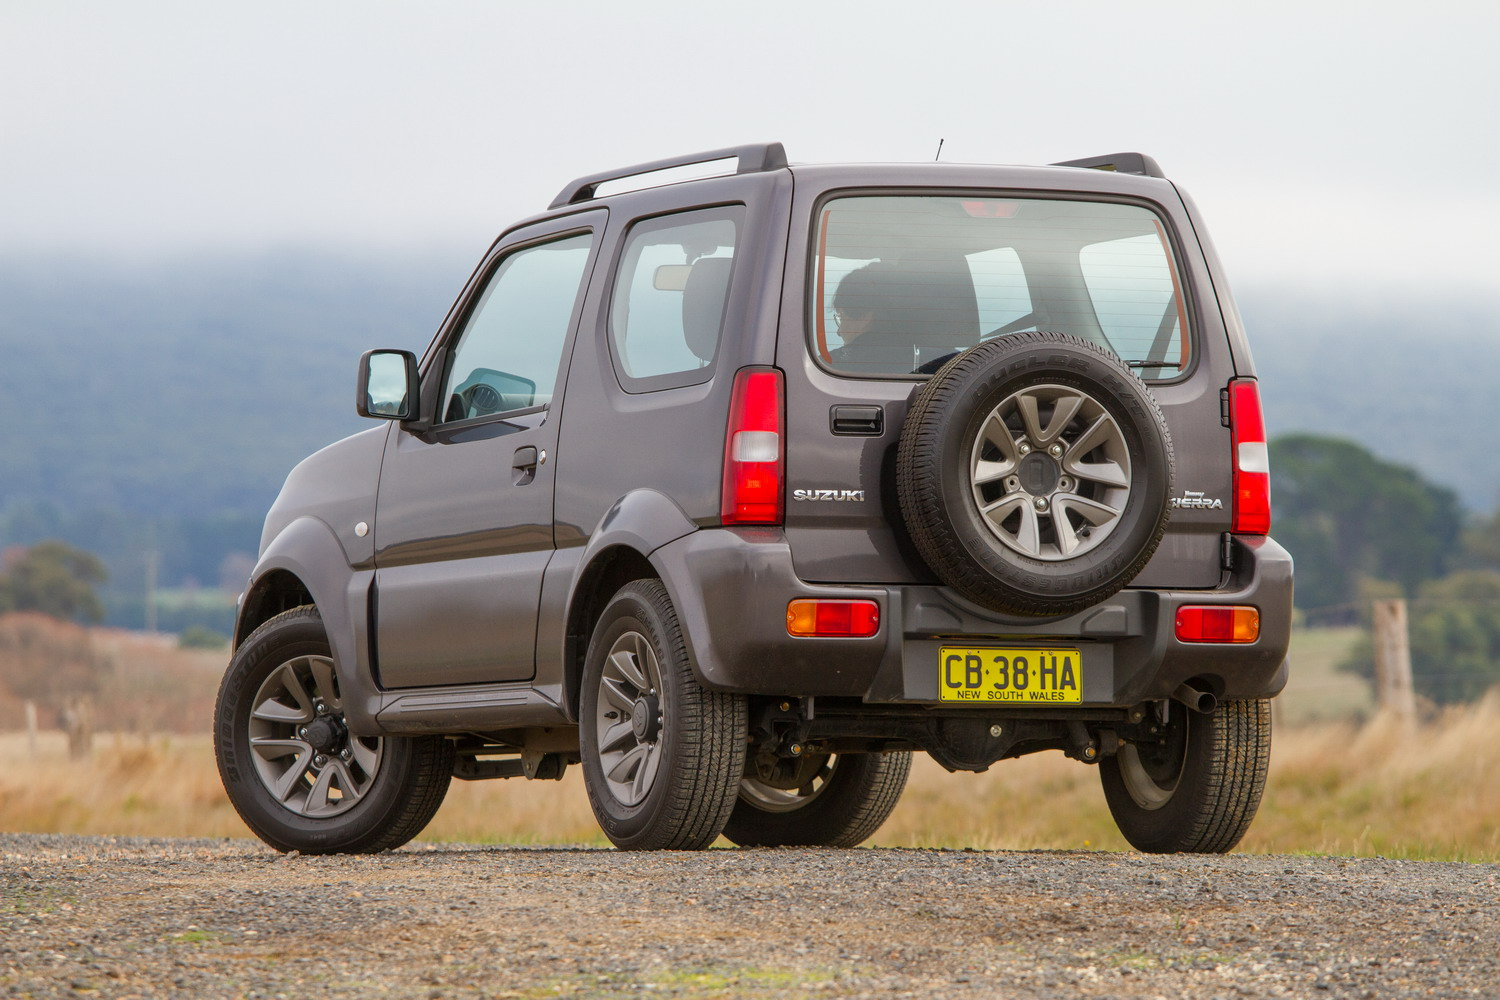 2018 suzuki sierra. wonderful sierra the jimny is only 36 metres long and 16m wide compared to say the toyota  lc200 which stretches nearly 5m almost 2m  inside 2018 suzuki sierra